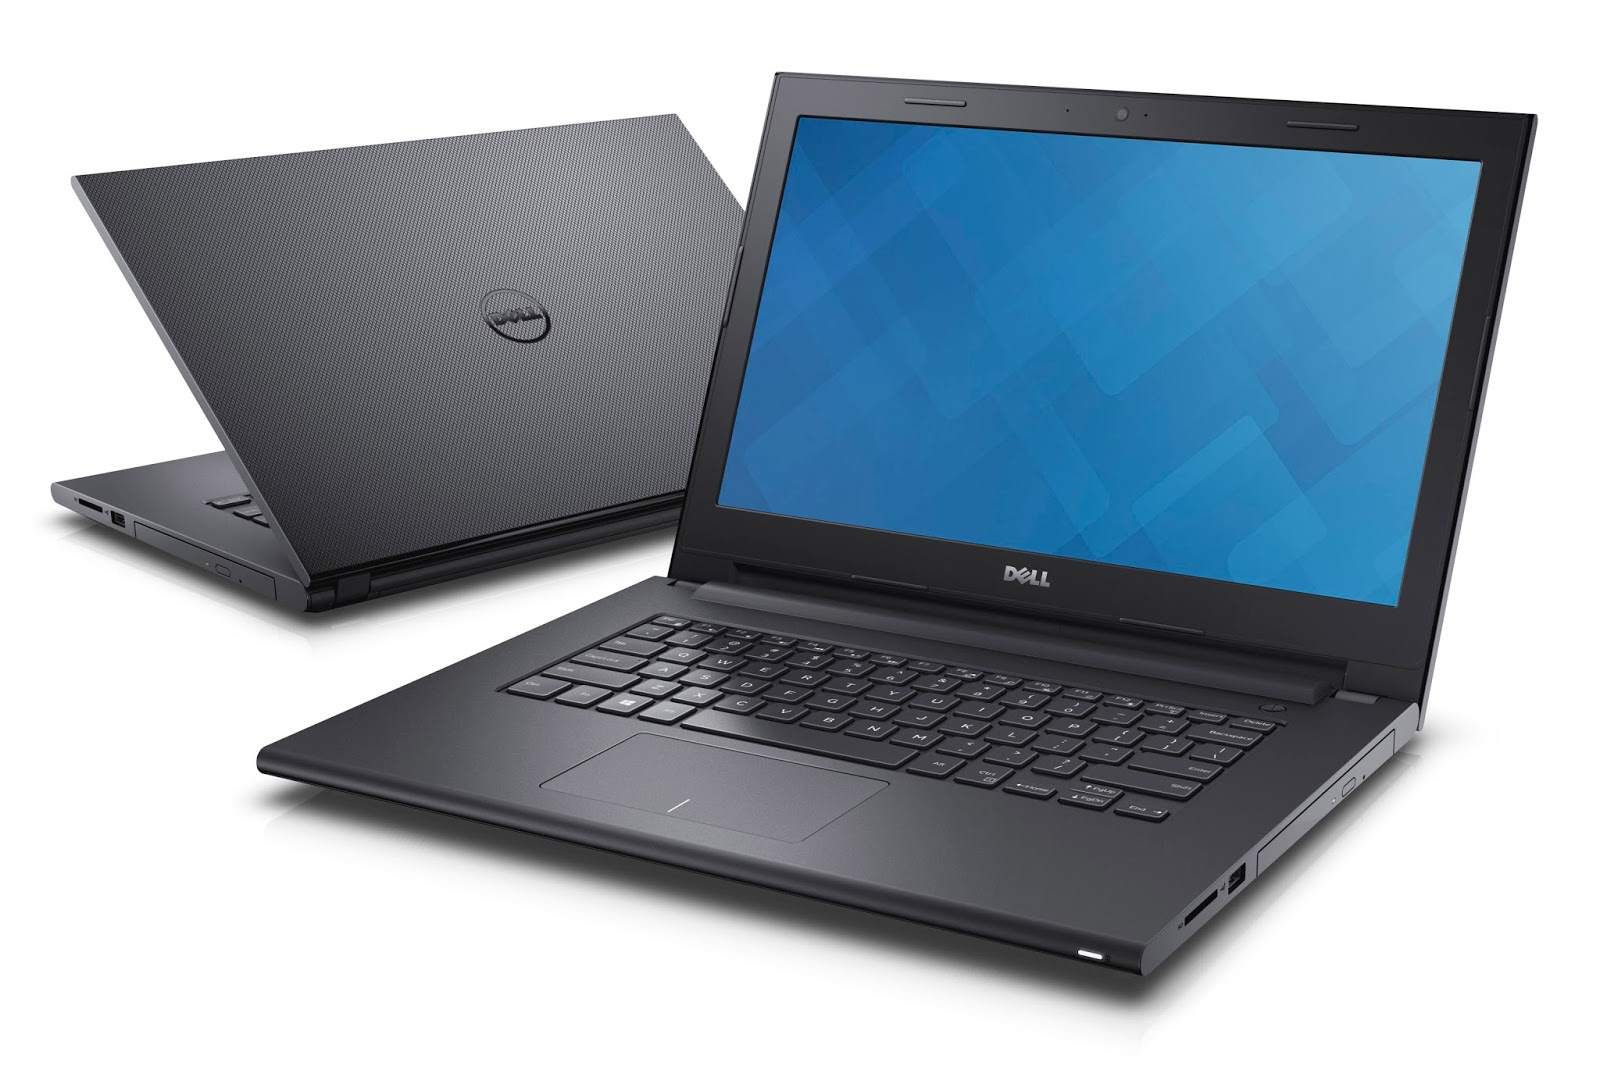 DELL WIRELESS 1704 802.11B/G/N DRIVER FOR WINDOWS 7